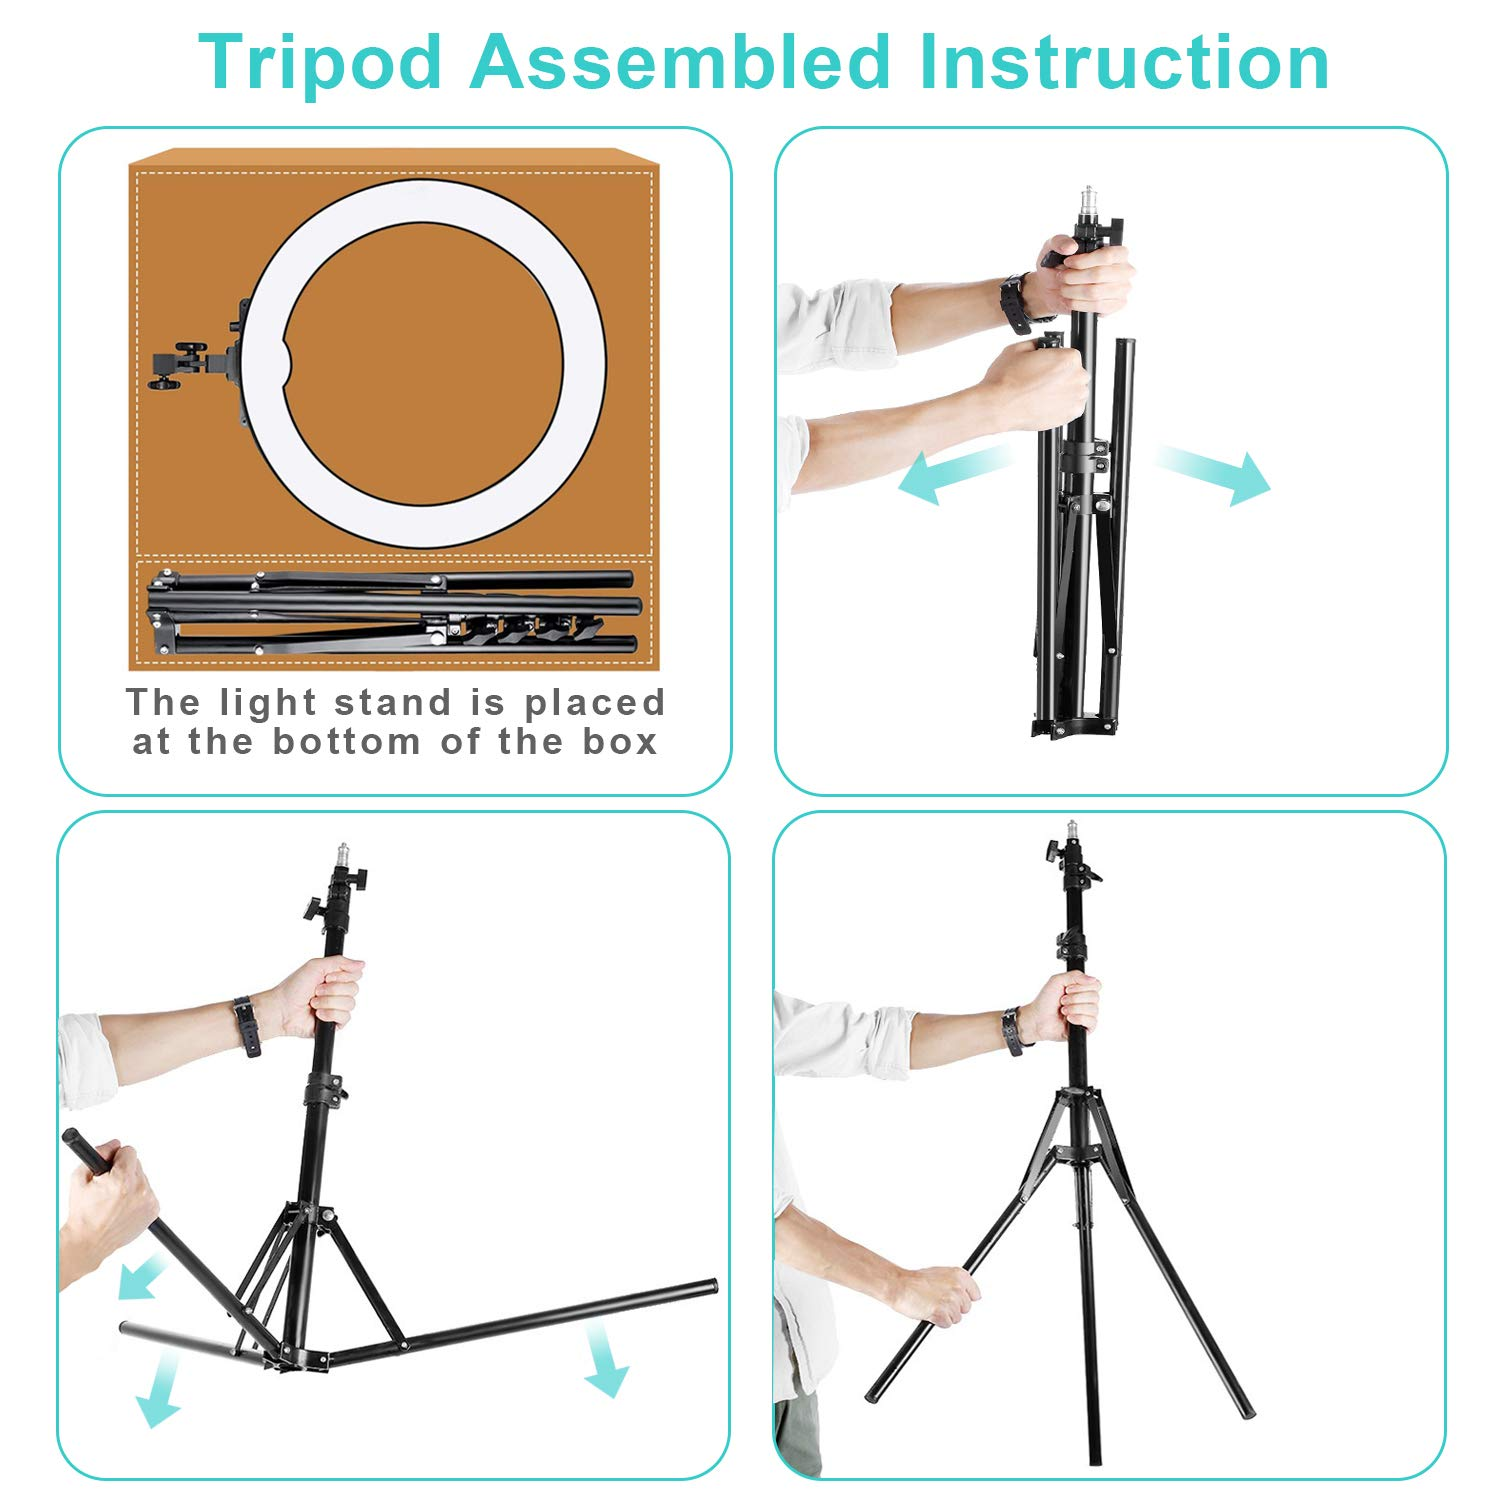 Ring Light Kit 18'' 48cm Outer 55W 5500K Dimmable Led Light Ring with Tripod Stand & Carrying Bag for Camera, Smartphone,Make-Up,YouTube,Portrait Shooting,Live Stream etc by PIXEL (Image #7)